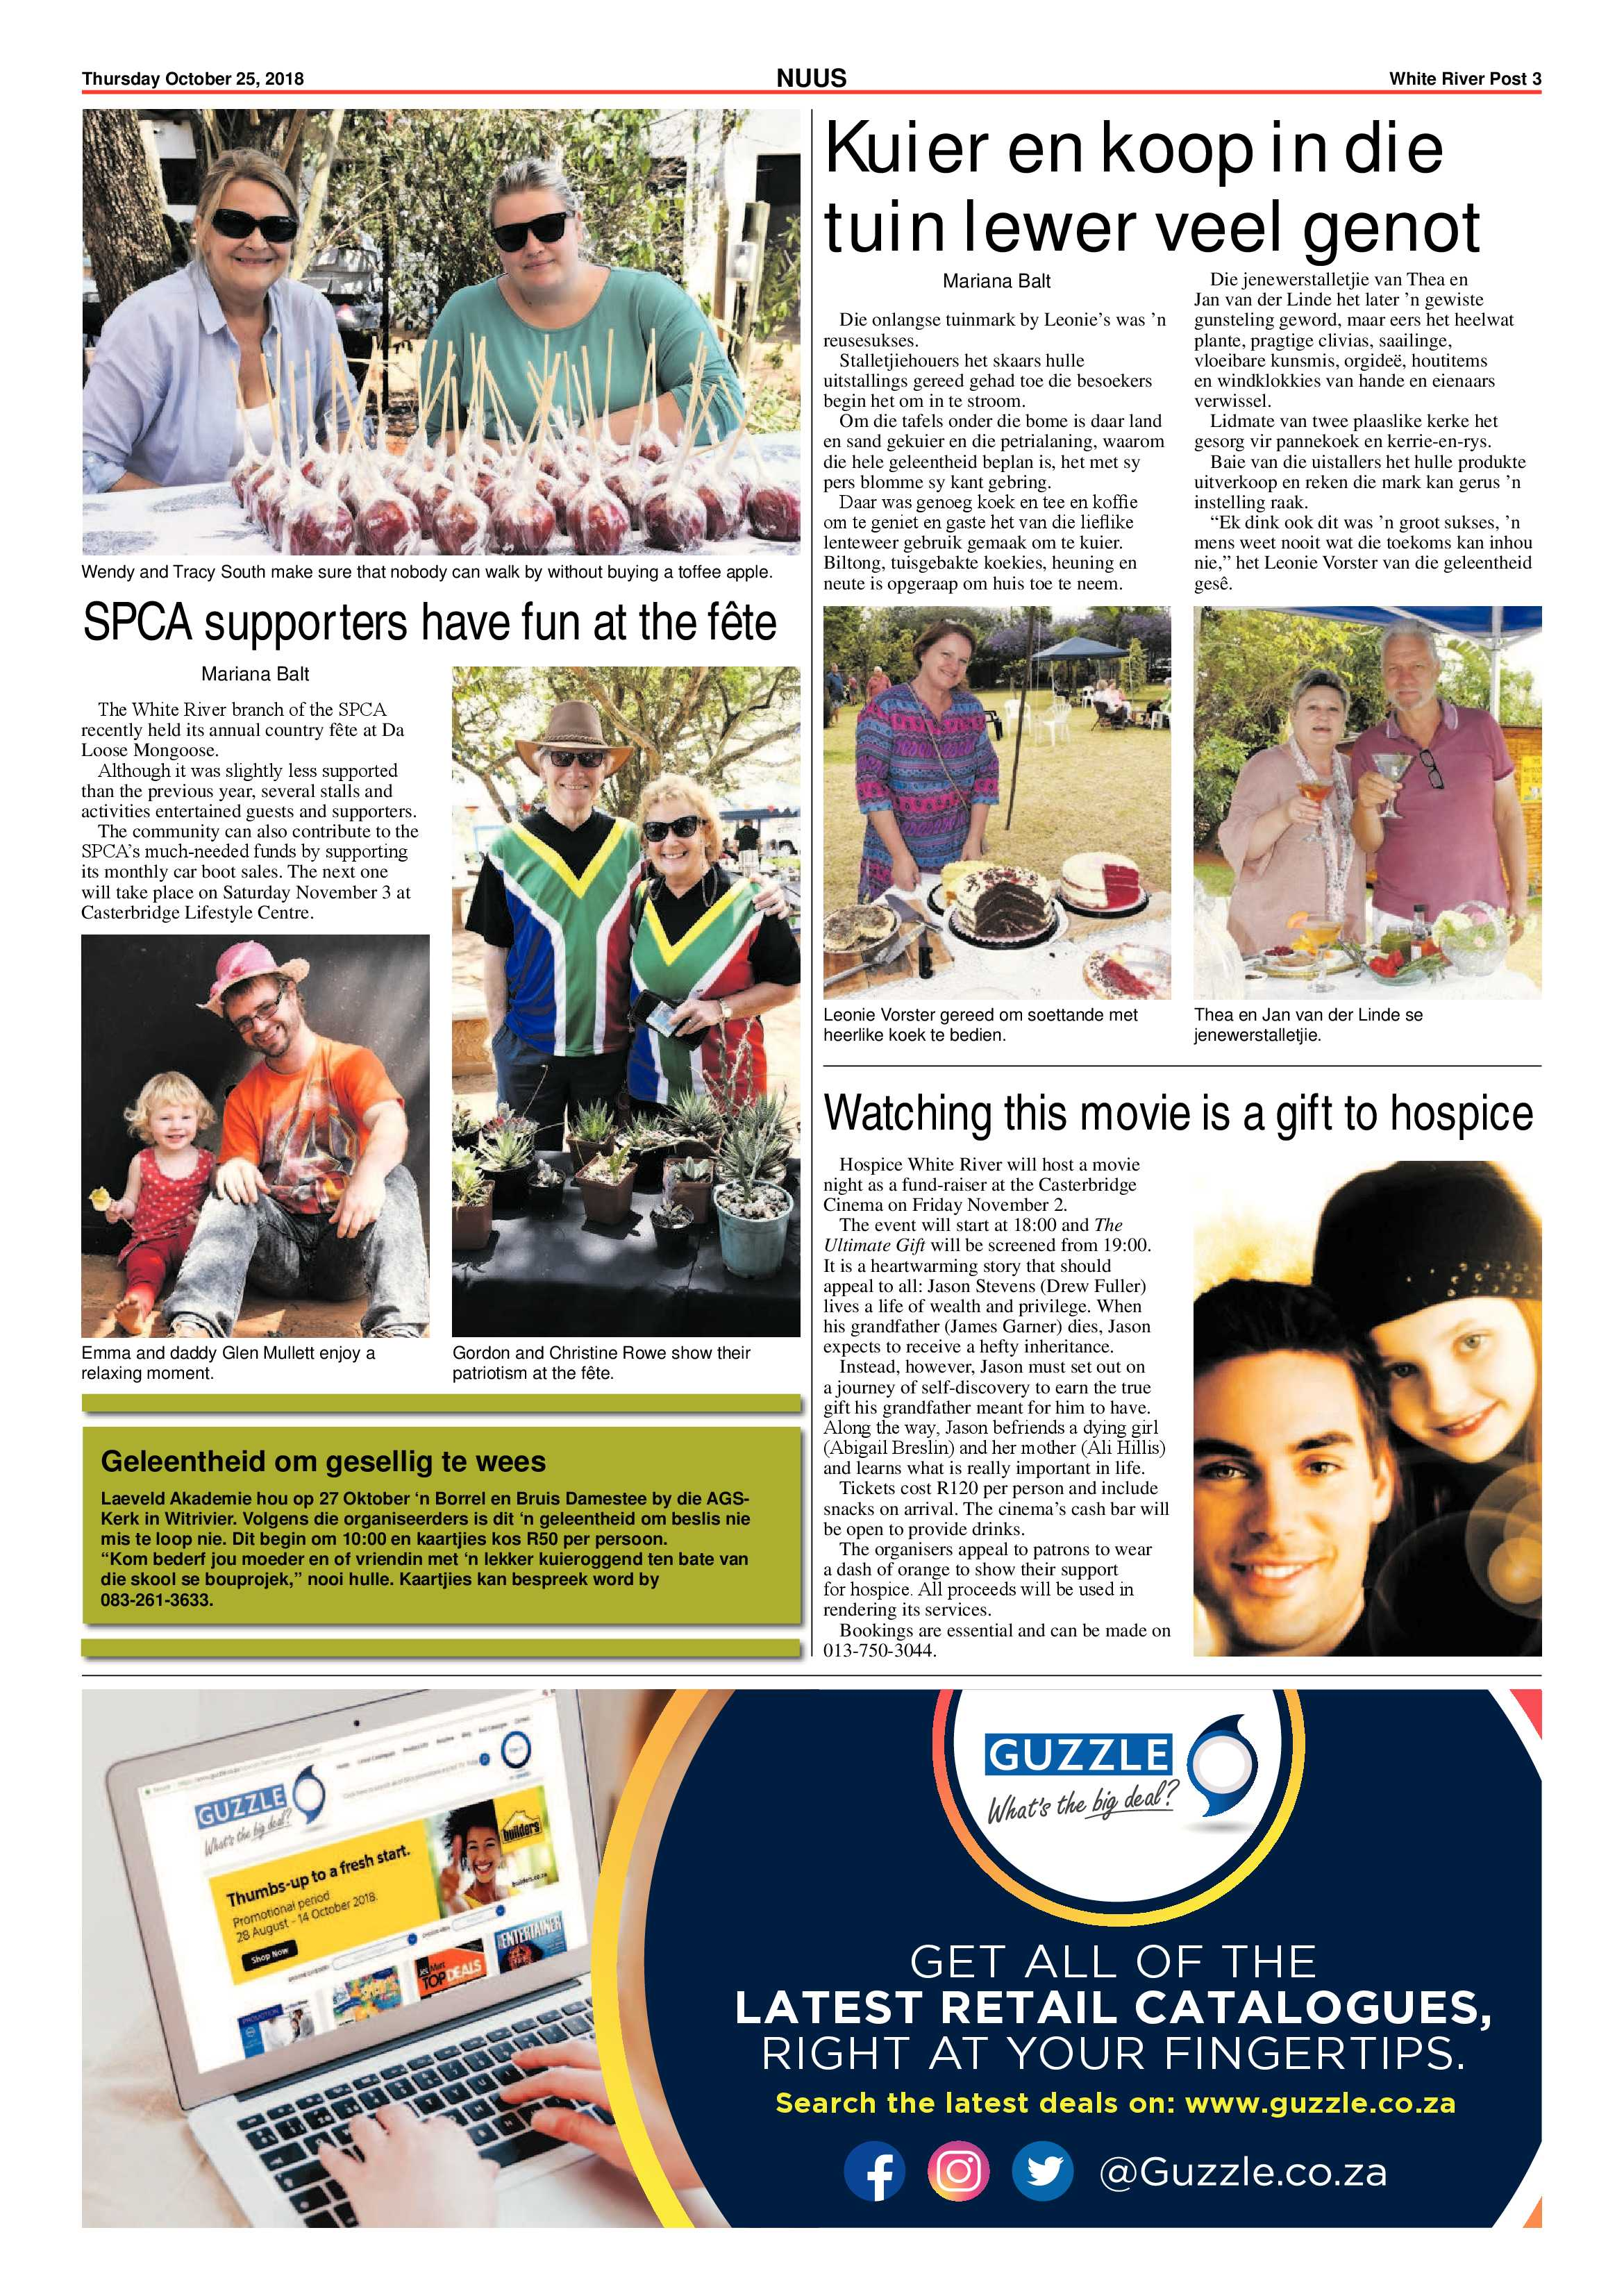 white-river-post-25-october-2018-epapers-page-3